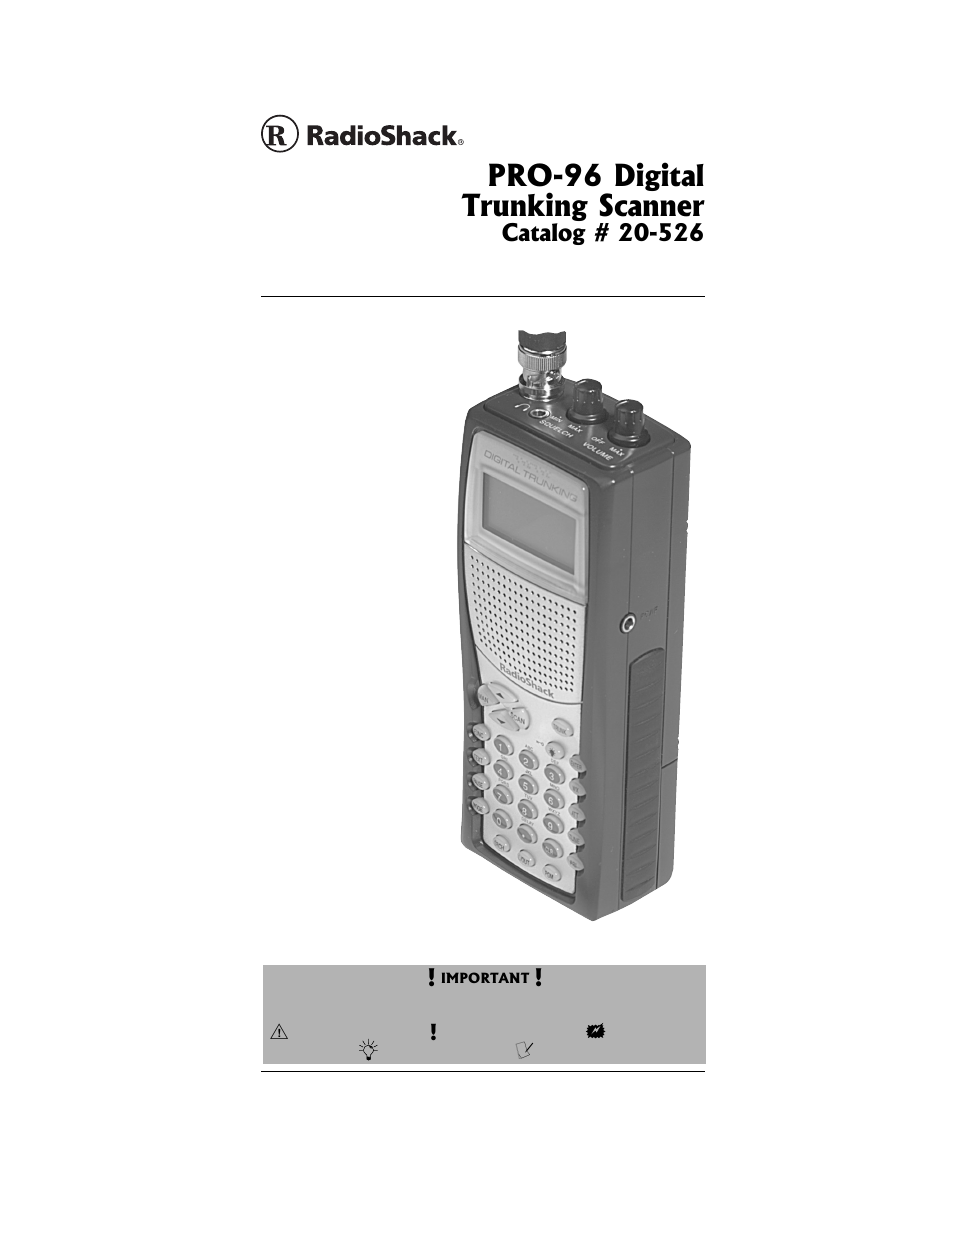 radio shack pro 96 user manual 124 pages rh manualsdir com radio shack pro 89 manual free radio shack pro 89 manual free